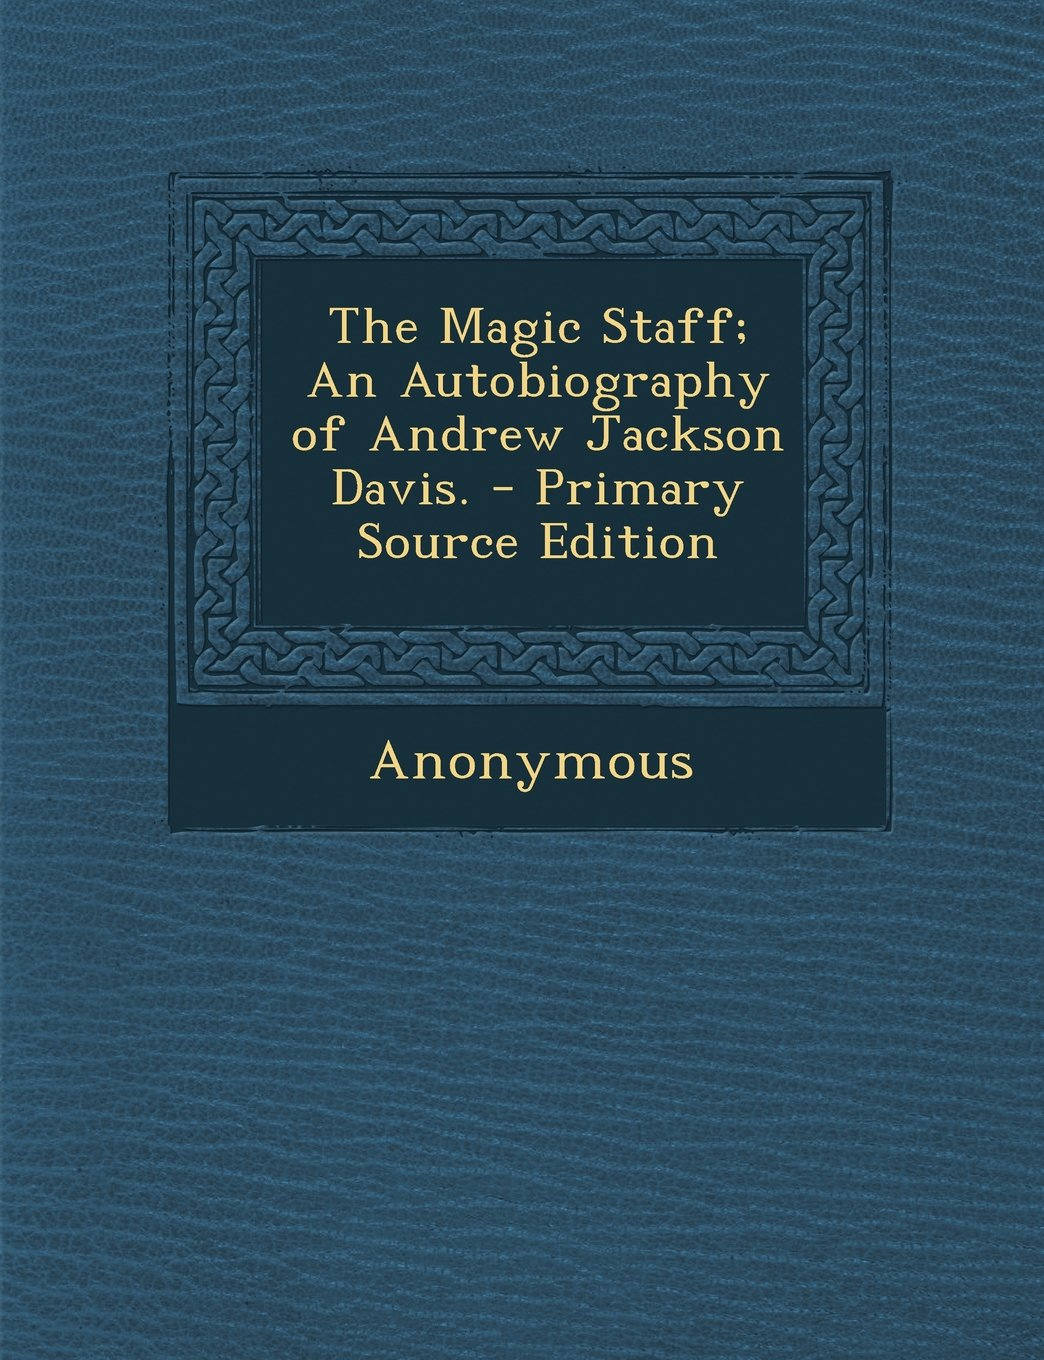 Download The Magic Staff; An Autobiography of Andrew Jackson Davis. - Primary Source Edition PDF